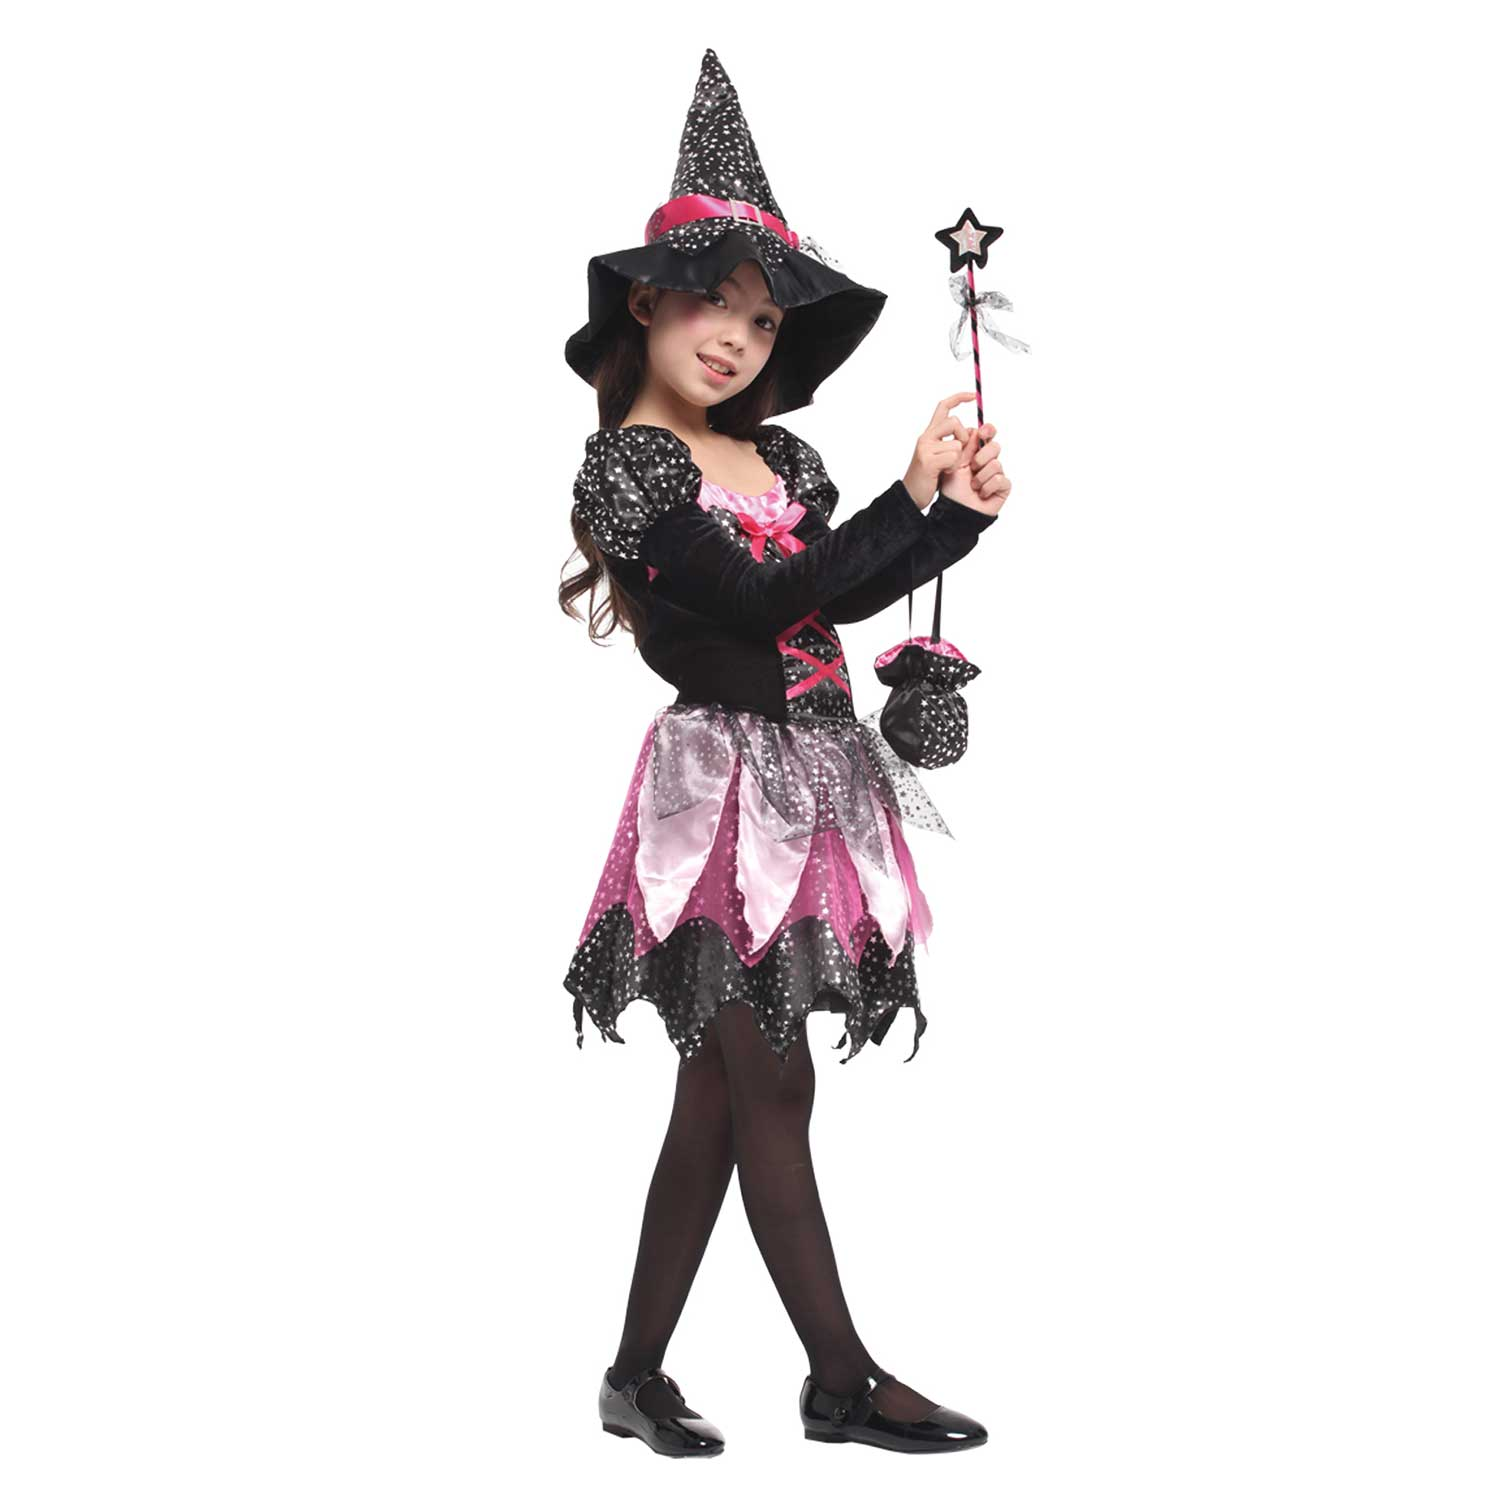 Halloween Costumes For Kids Scary.Sparkle Fairy Witch Scary Halloween Costume For Girls